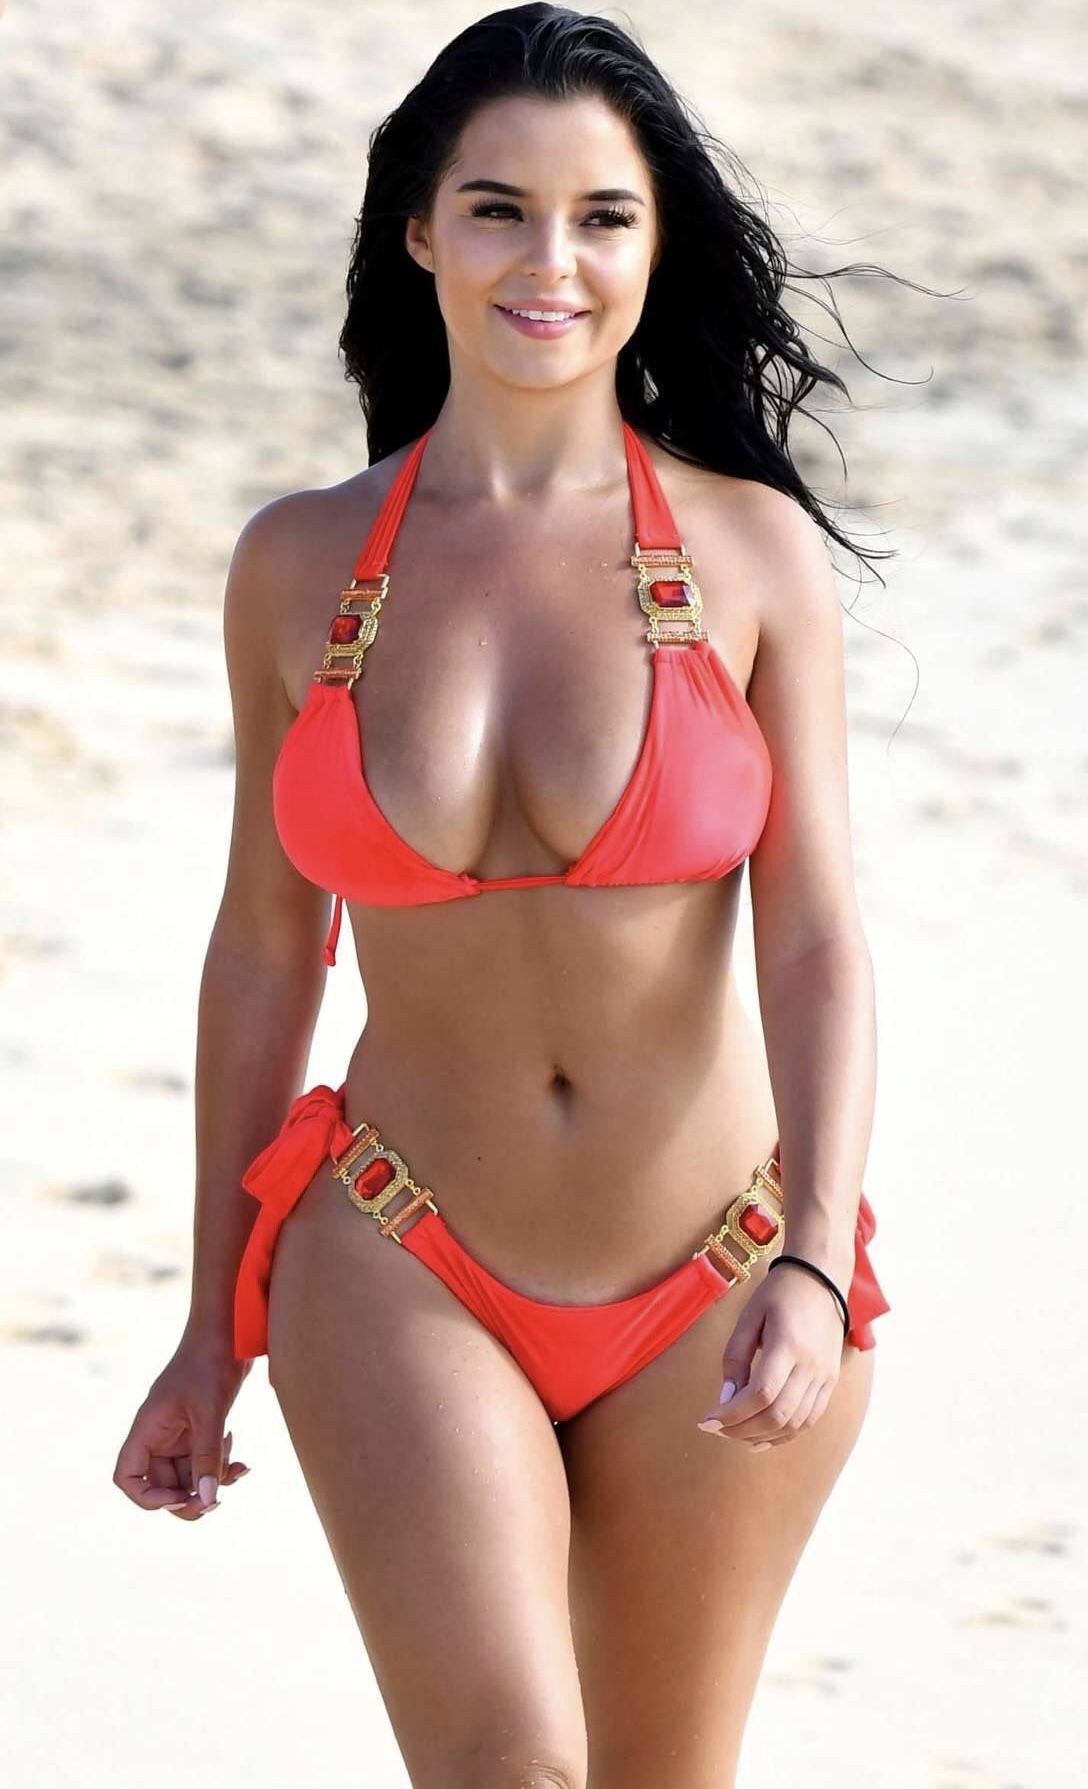 3efcf80bb7083 Demi Rose Mawby Holly Peers, Bikini Babes, Bikini Girls, Thong Bikini,  Swimsuits